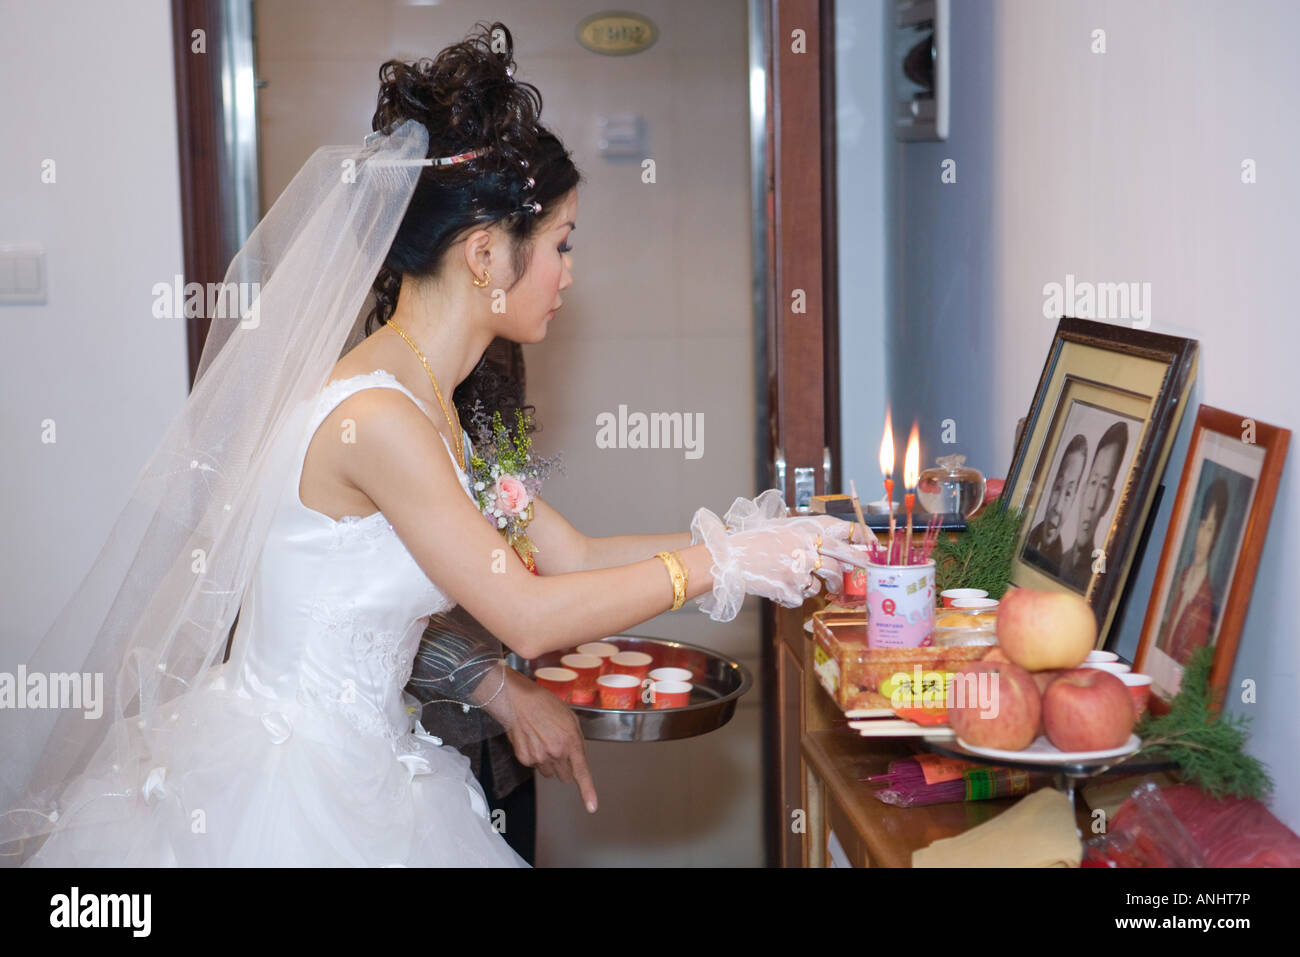 Chinese wedding, bride taking offering to ancestral shrine - Stock Image